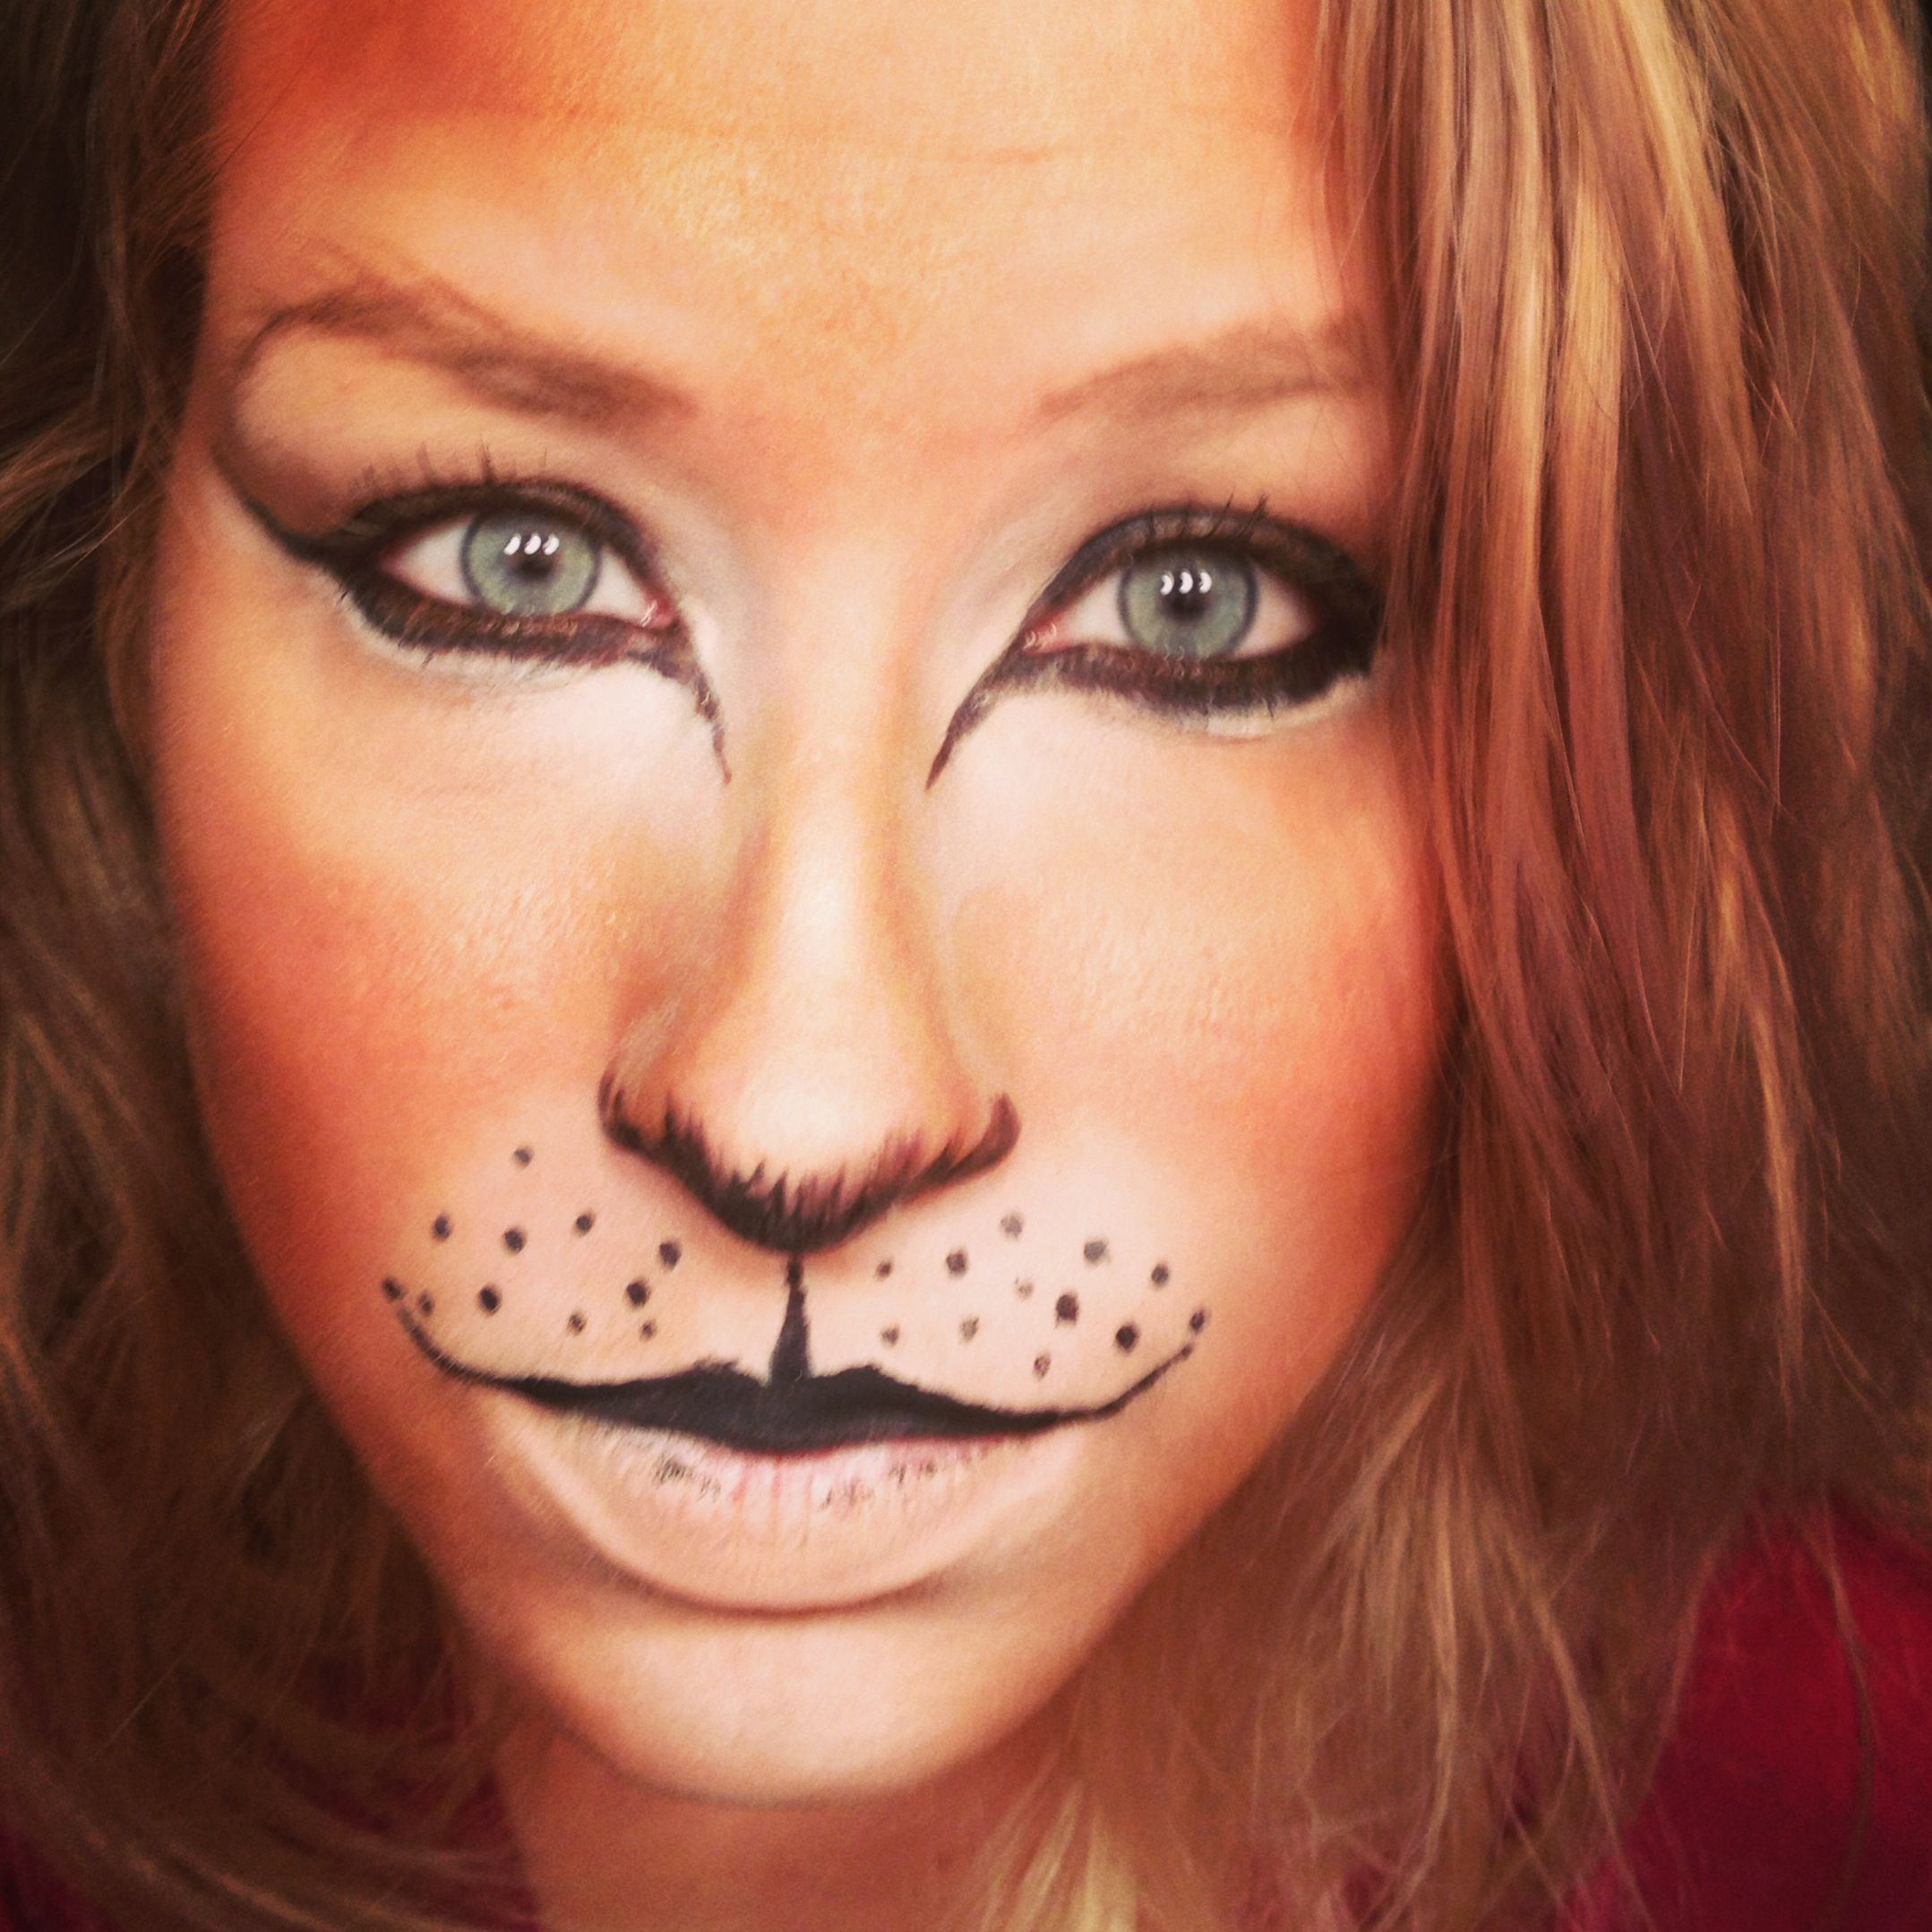 Lion, lioness , Leo makeup style for Halloween | Makeup ...